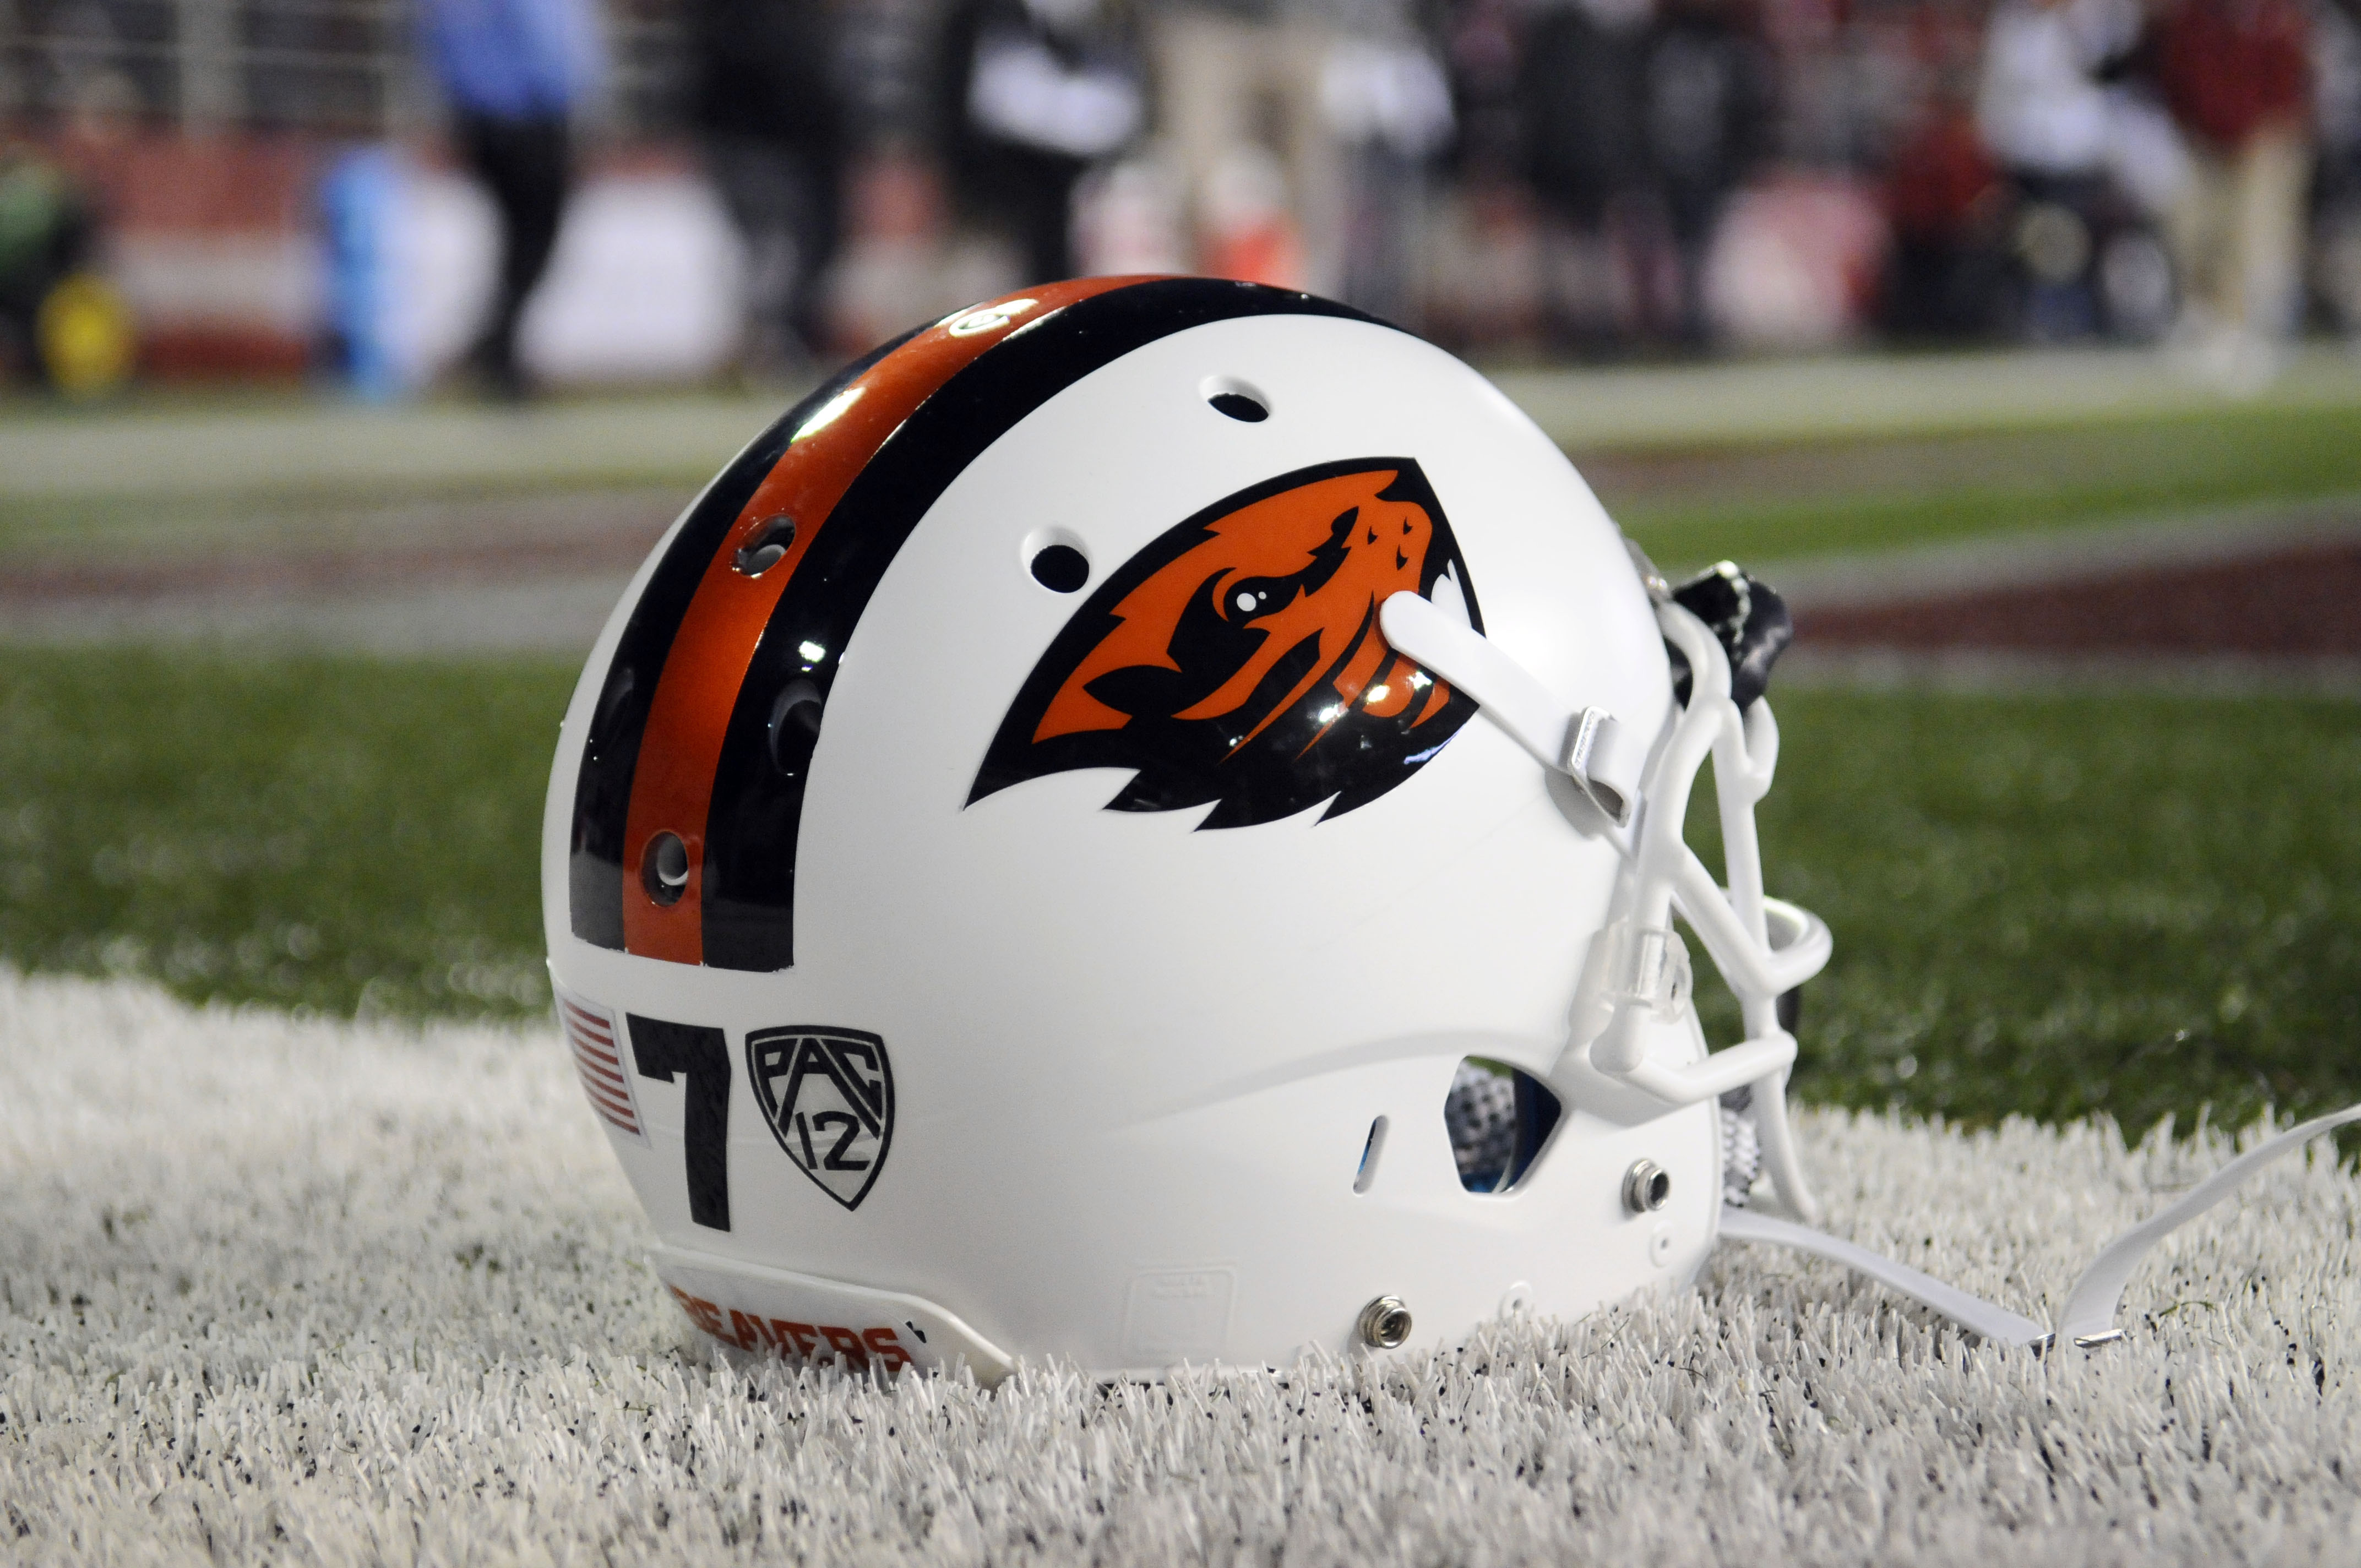 Oct 12, 2013; Pullman, WA, USA; Oregon State Beavers helmet sits on the sideline before a game against the Washington State Cougars at Martin Stadium. (James Snook-USA TODAY Sports)